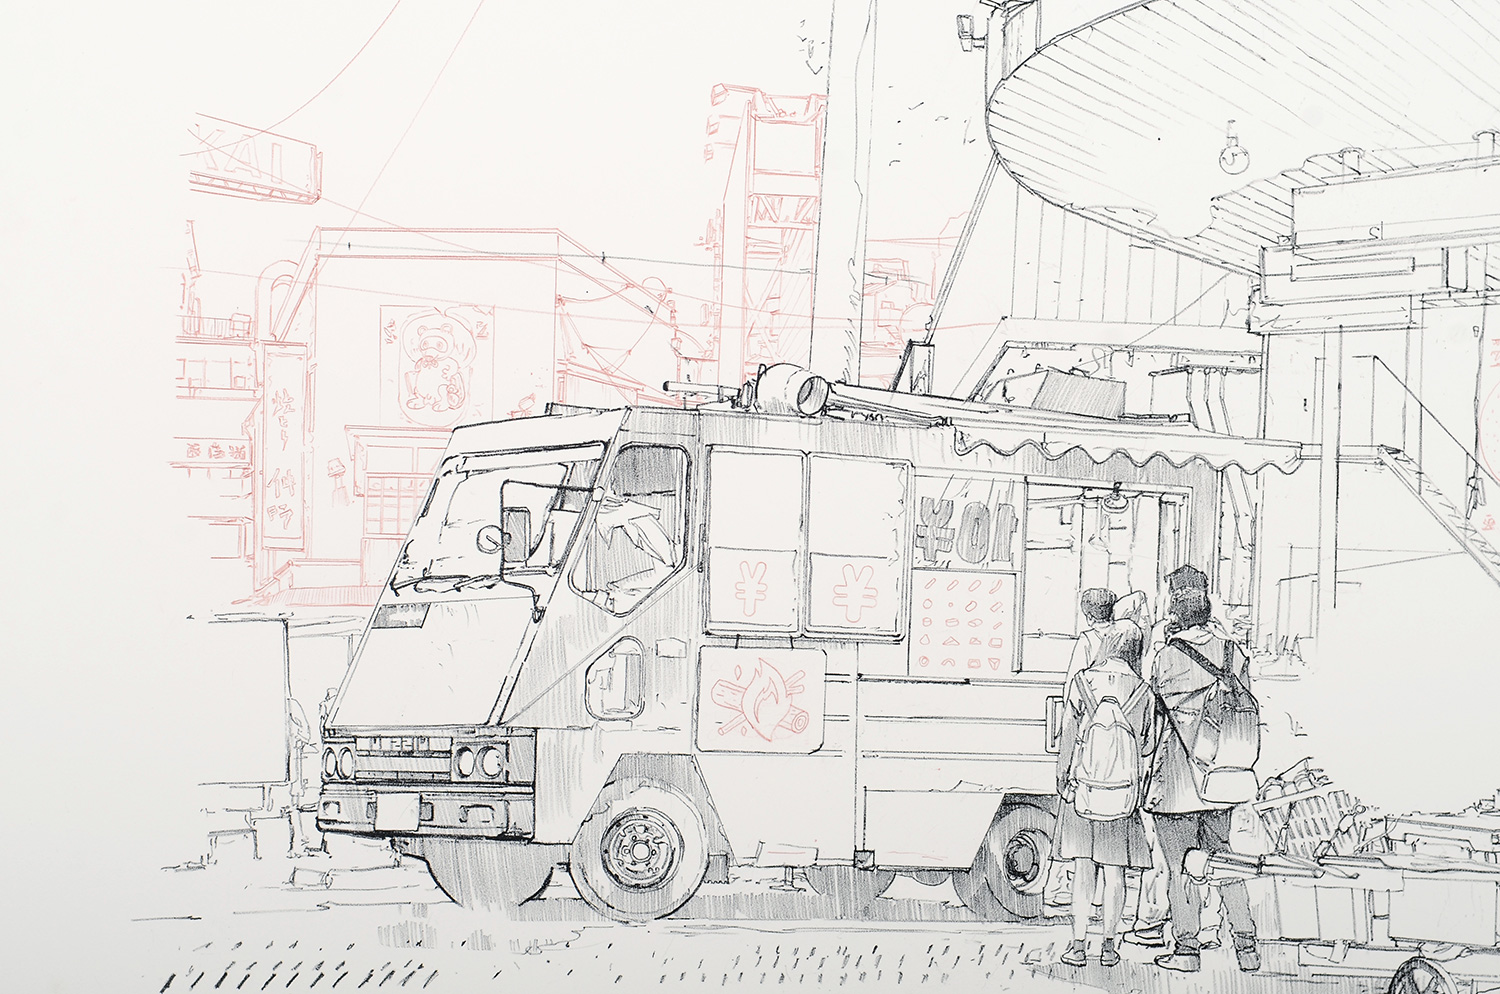 zoer_velvet_street_food_lithographie_CSX_stone_lithograph_urdla_graffiti_process_zoerism_soldart_edition_royx_nicolas_royol_58